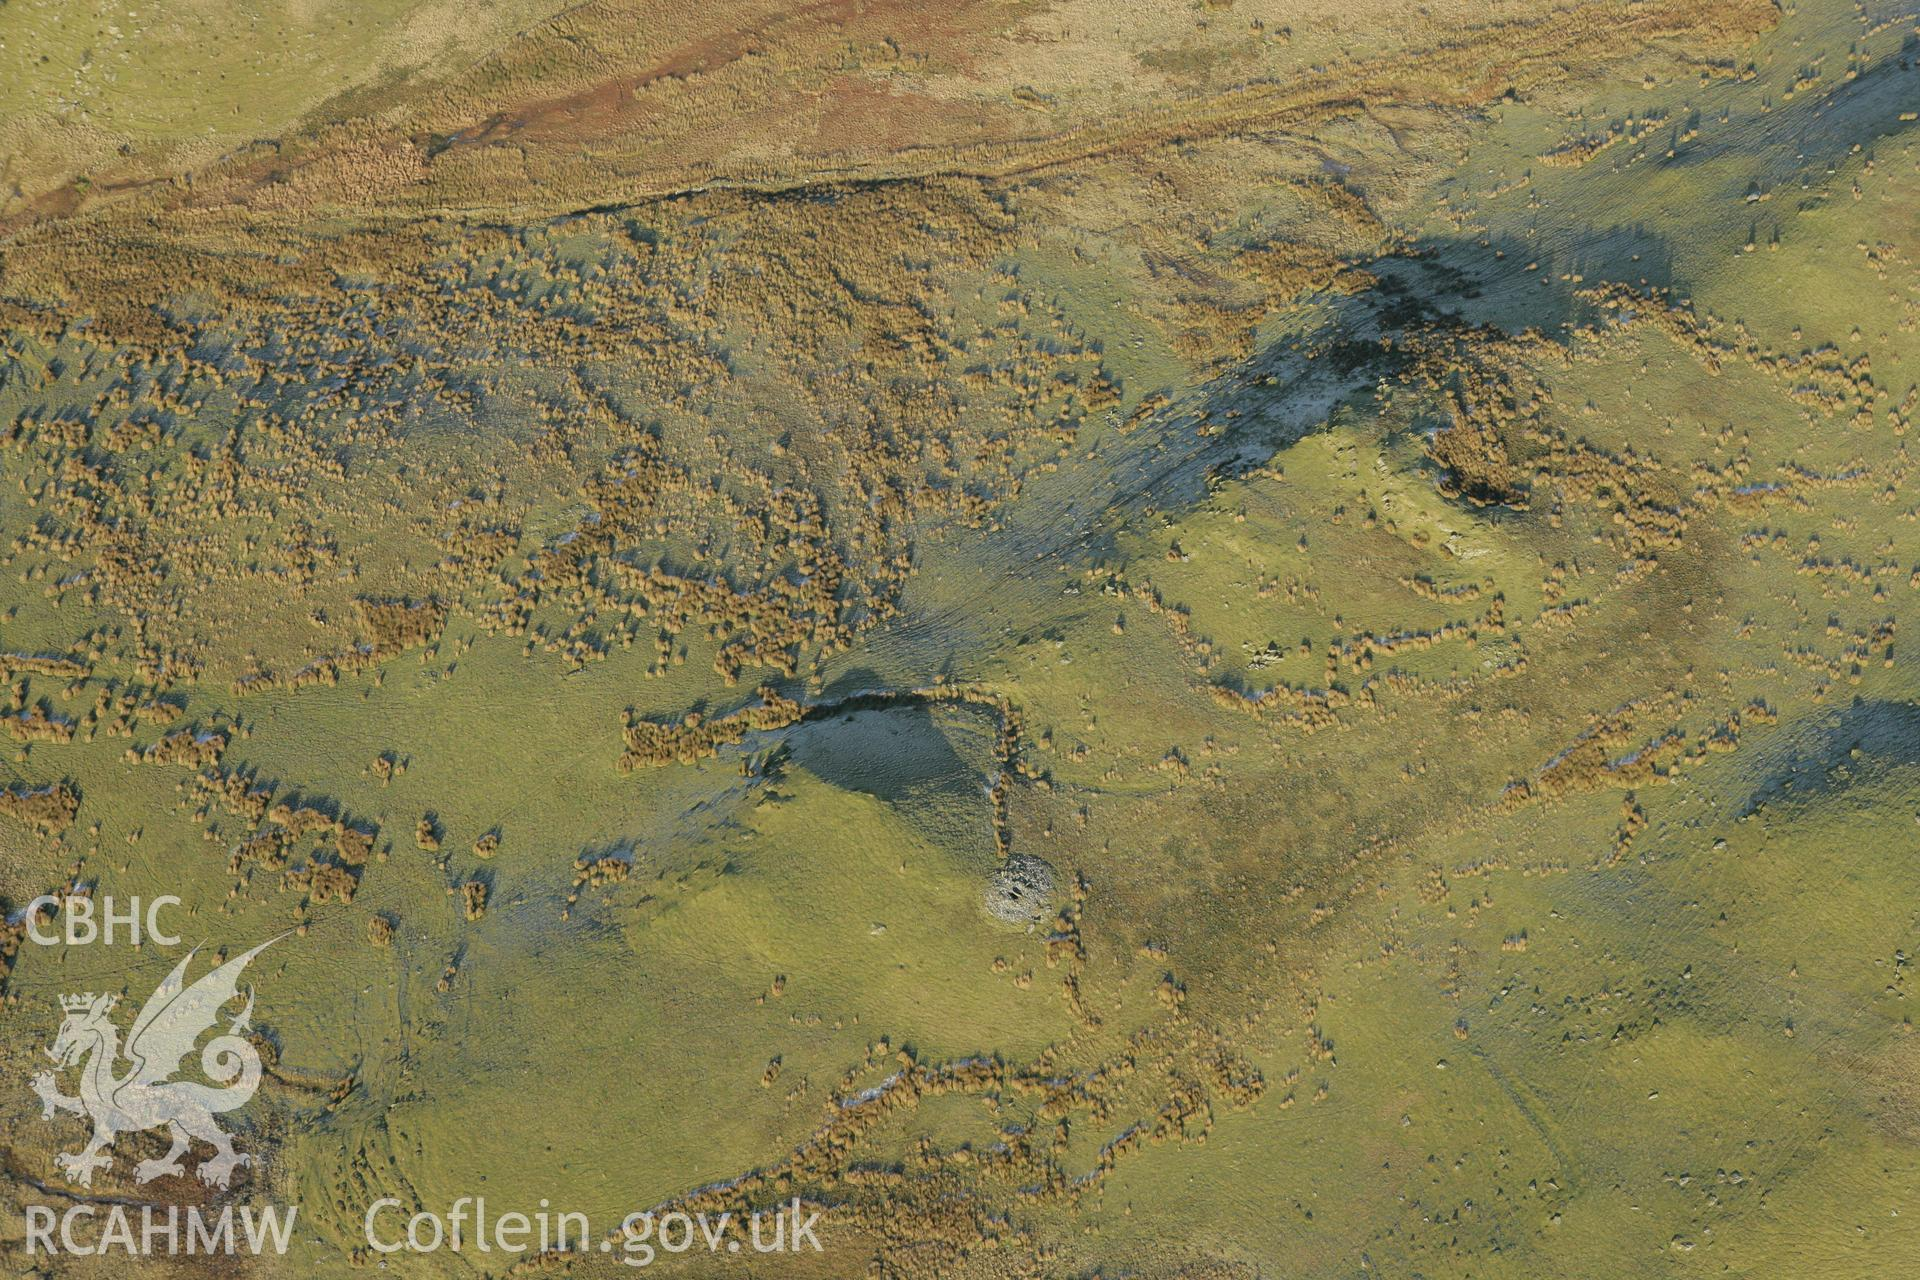 RCAHMW colour oblique photograph of Blaen Glasffrwd cairn III. Taken by Toby Driver on 20/12/2007.